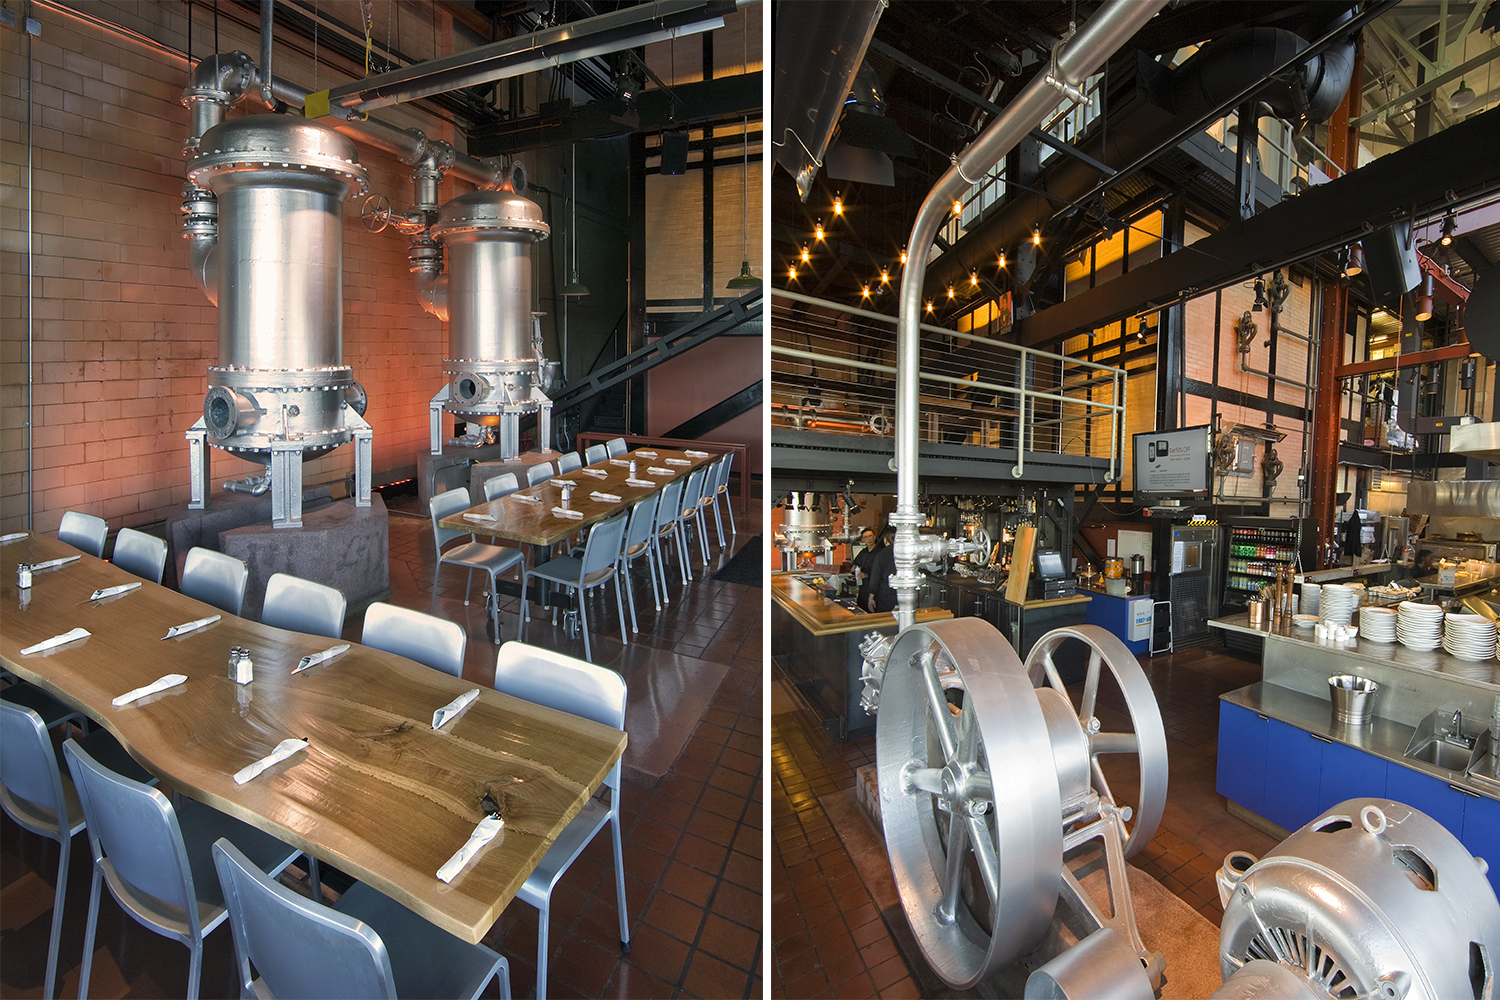 10_Projects_The Boiler House Restaurant.jpg